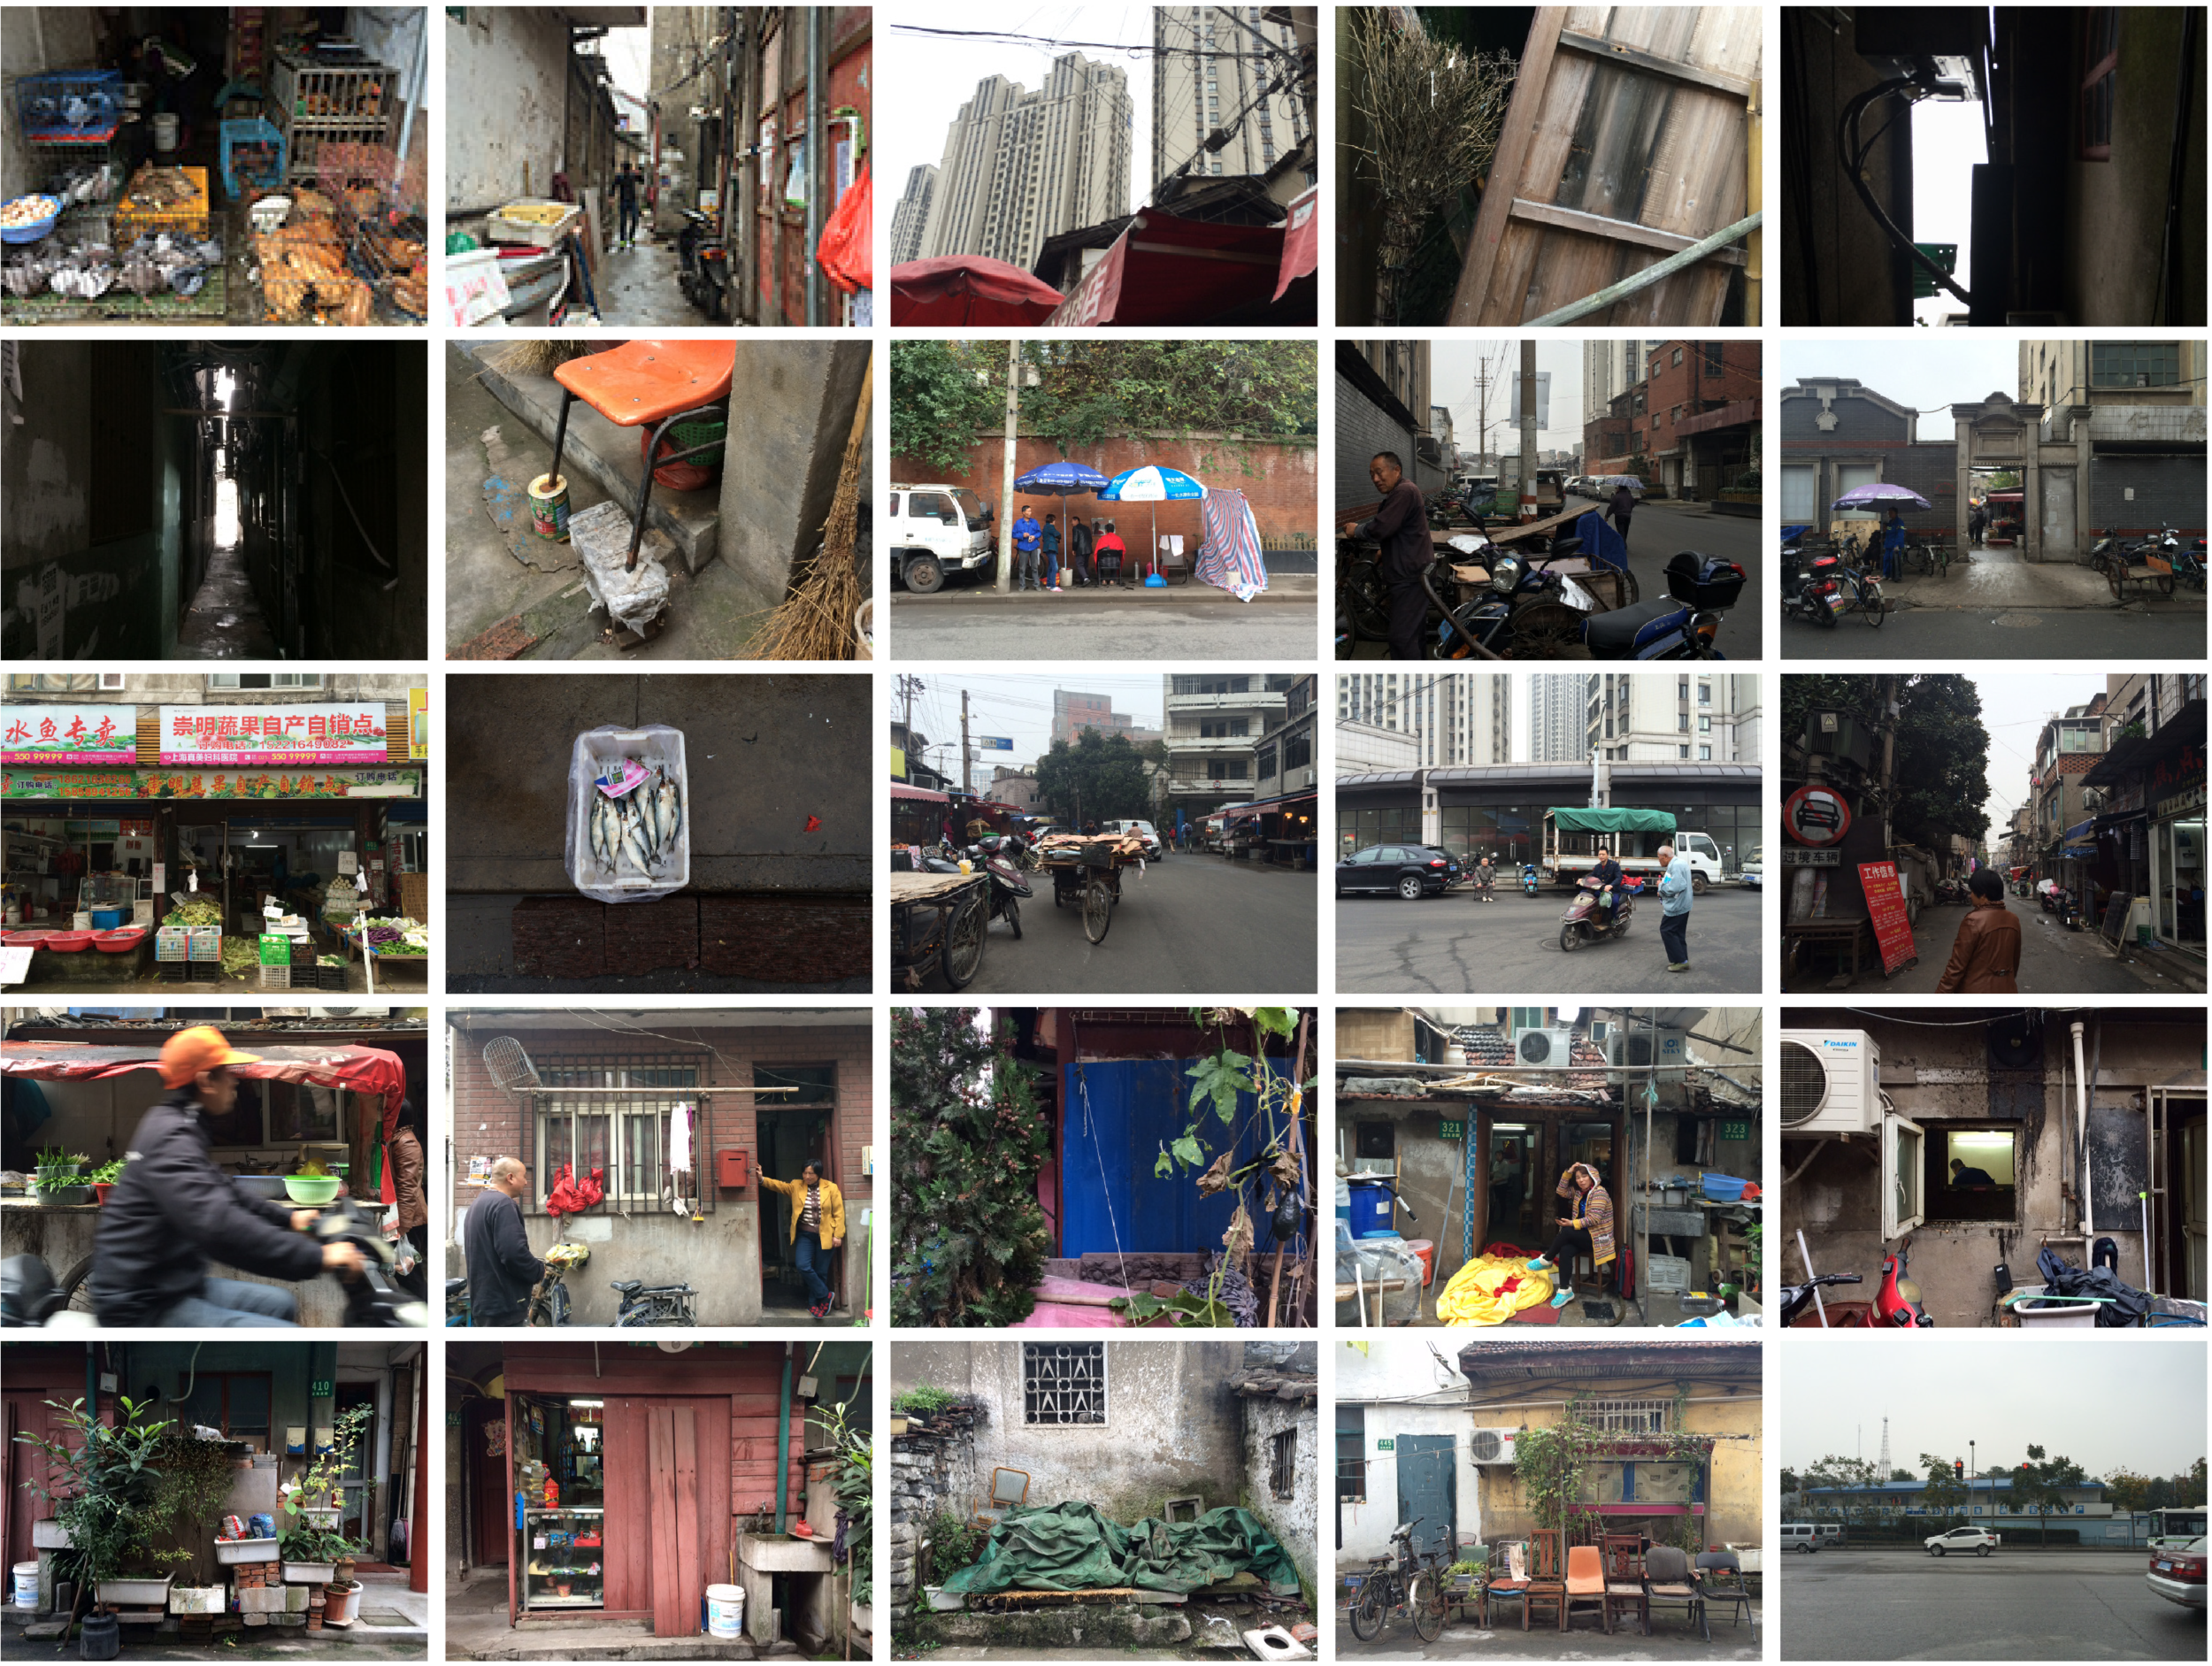 Documentation of Dinghaiqiao urban conditions